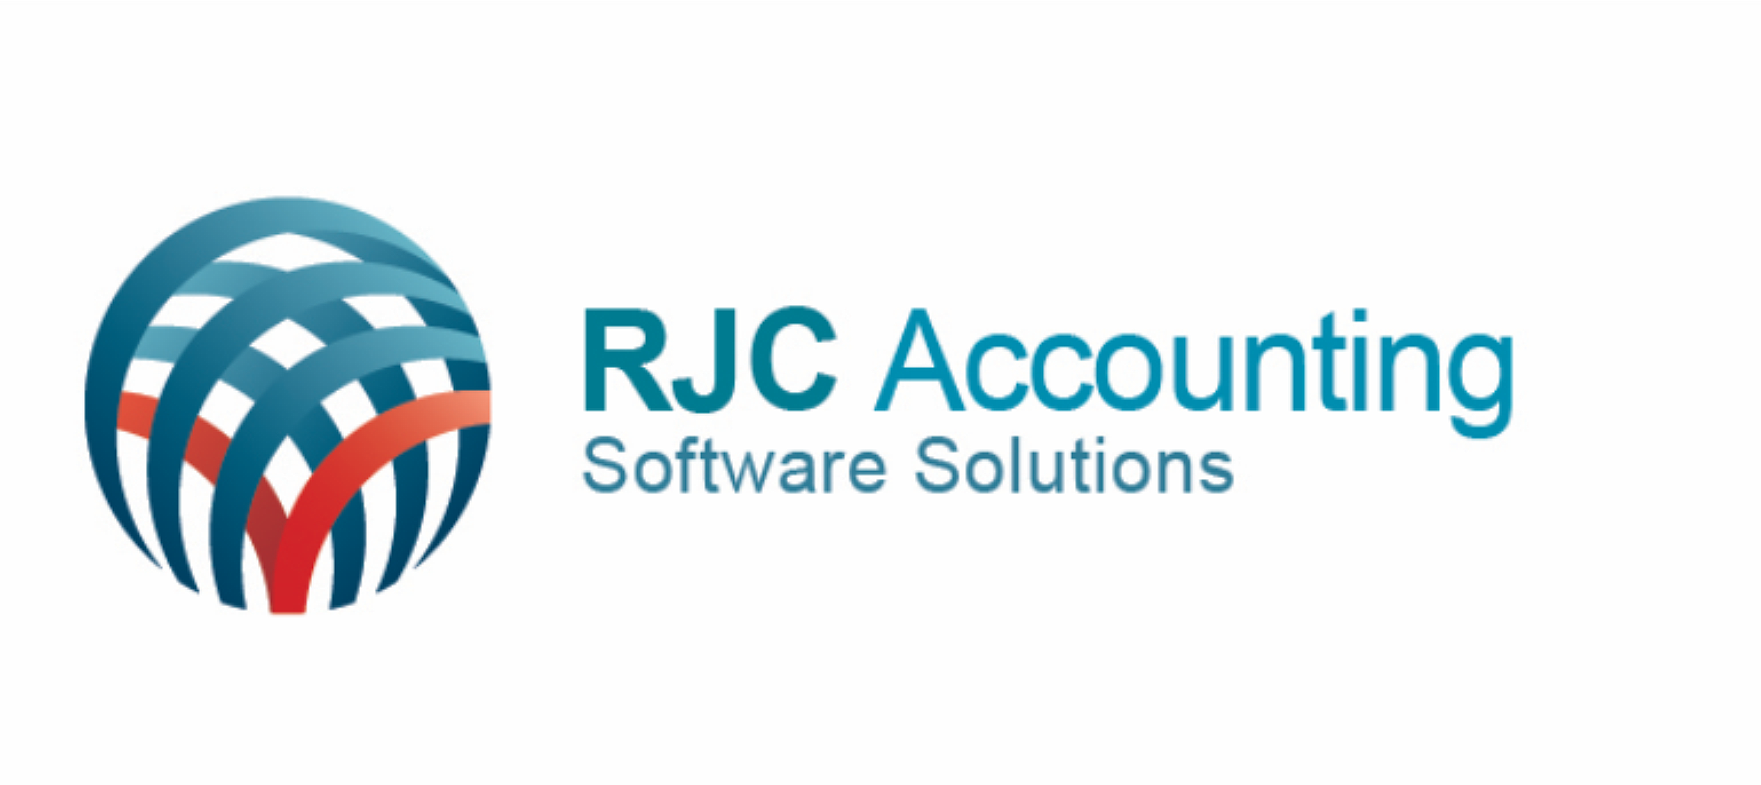 RJC Accounting Software Solutions